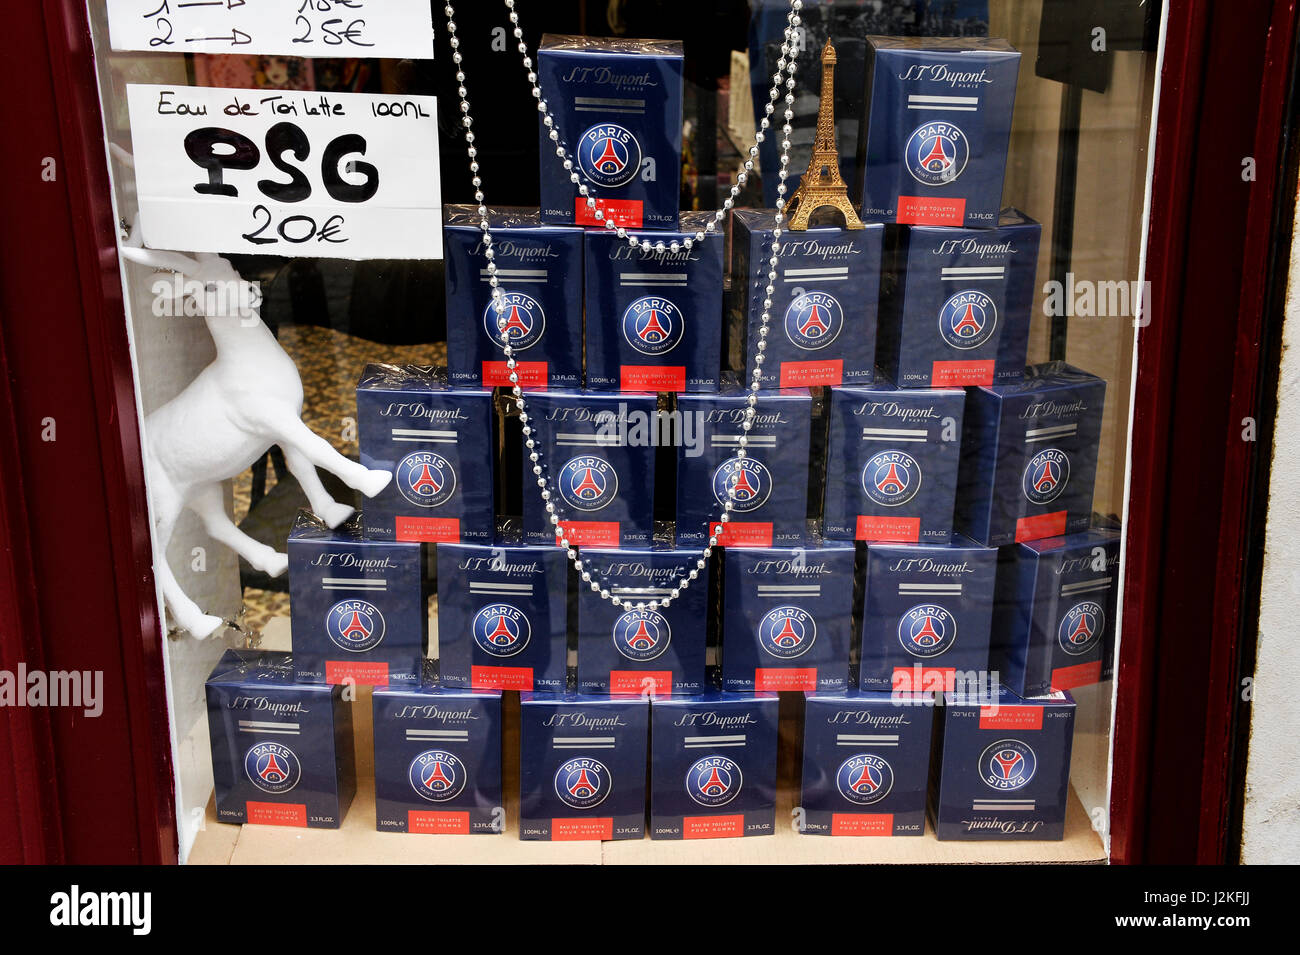 Spin-off product of PSG Football Team, Paris, France - Stock Image